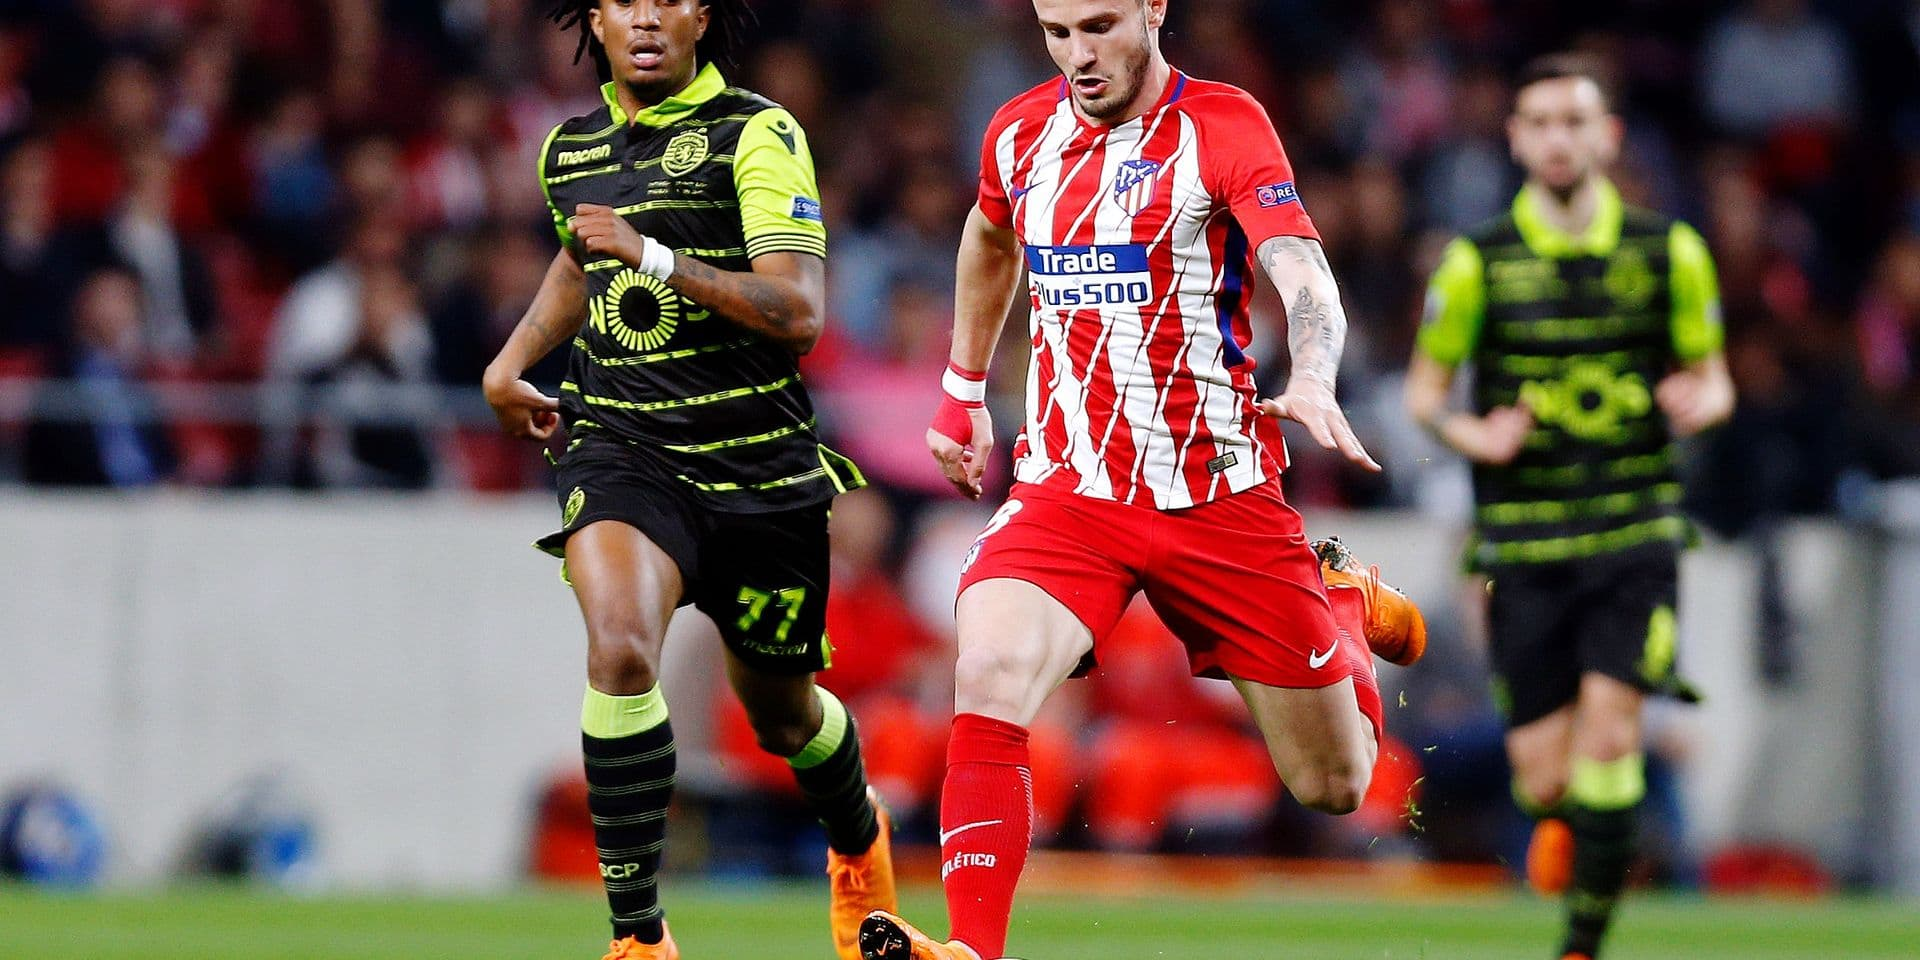 Atletico's Saul Niguez runs with the ball followed by Sporting's Gelson Martins, left, during the Europa League quarterfinal first leg soccer match between Atletico Madrid and Sporting CP at the Metropolitano stadium in Madrid, Thursday, April 5, 2018. (AP Photo/Francisco Seco)